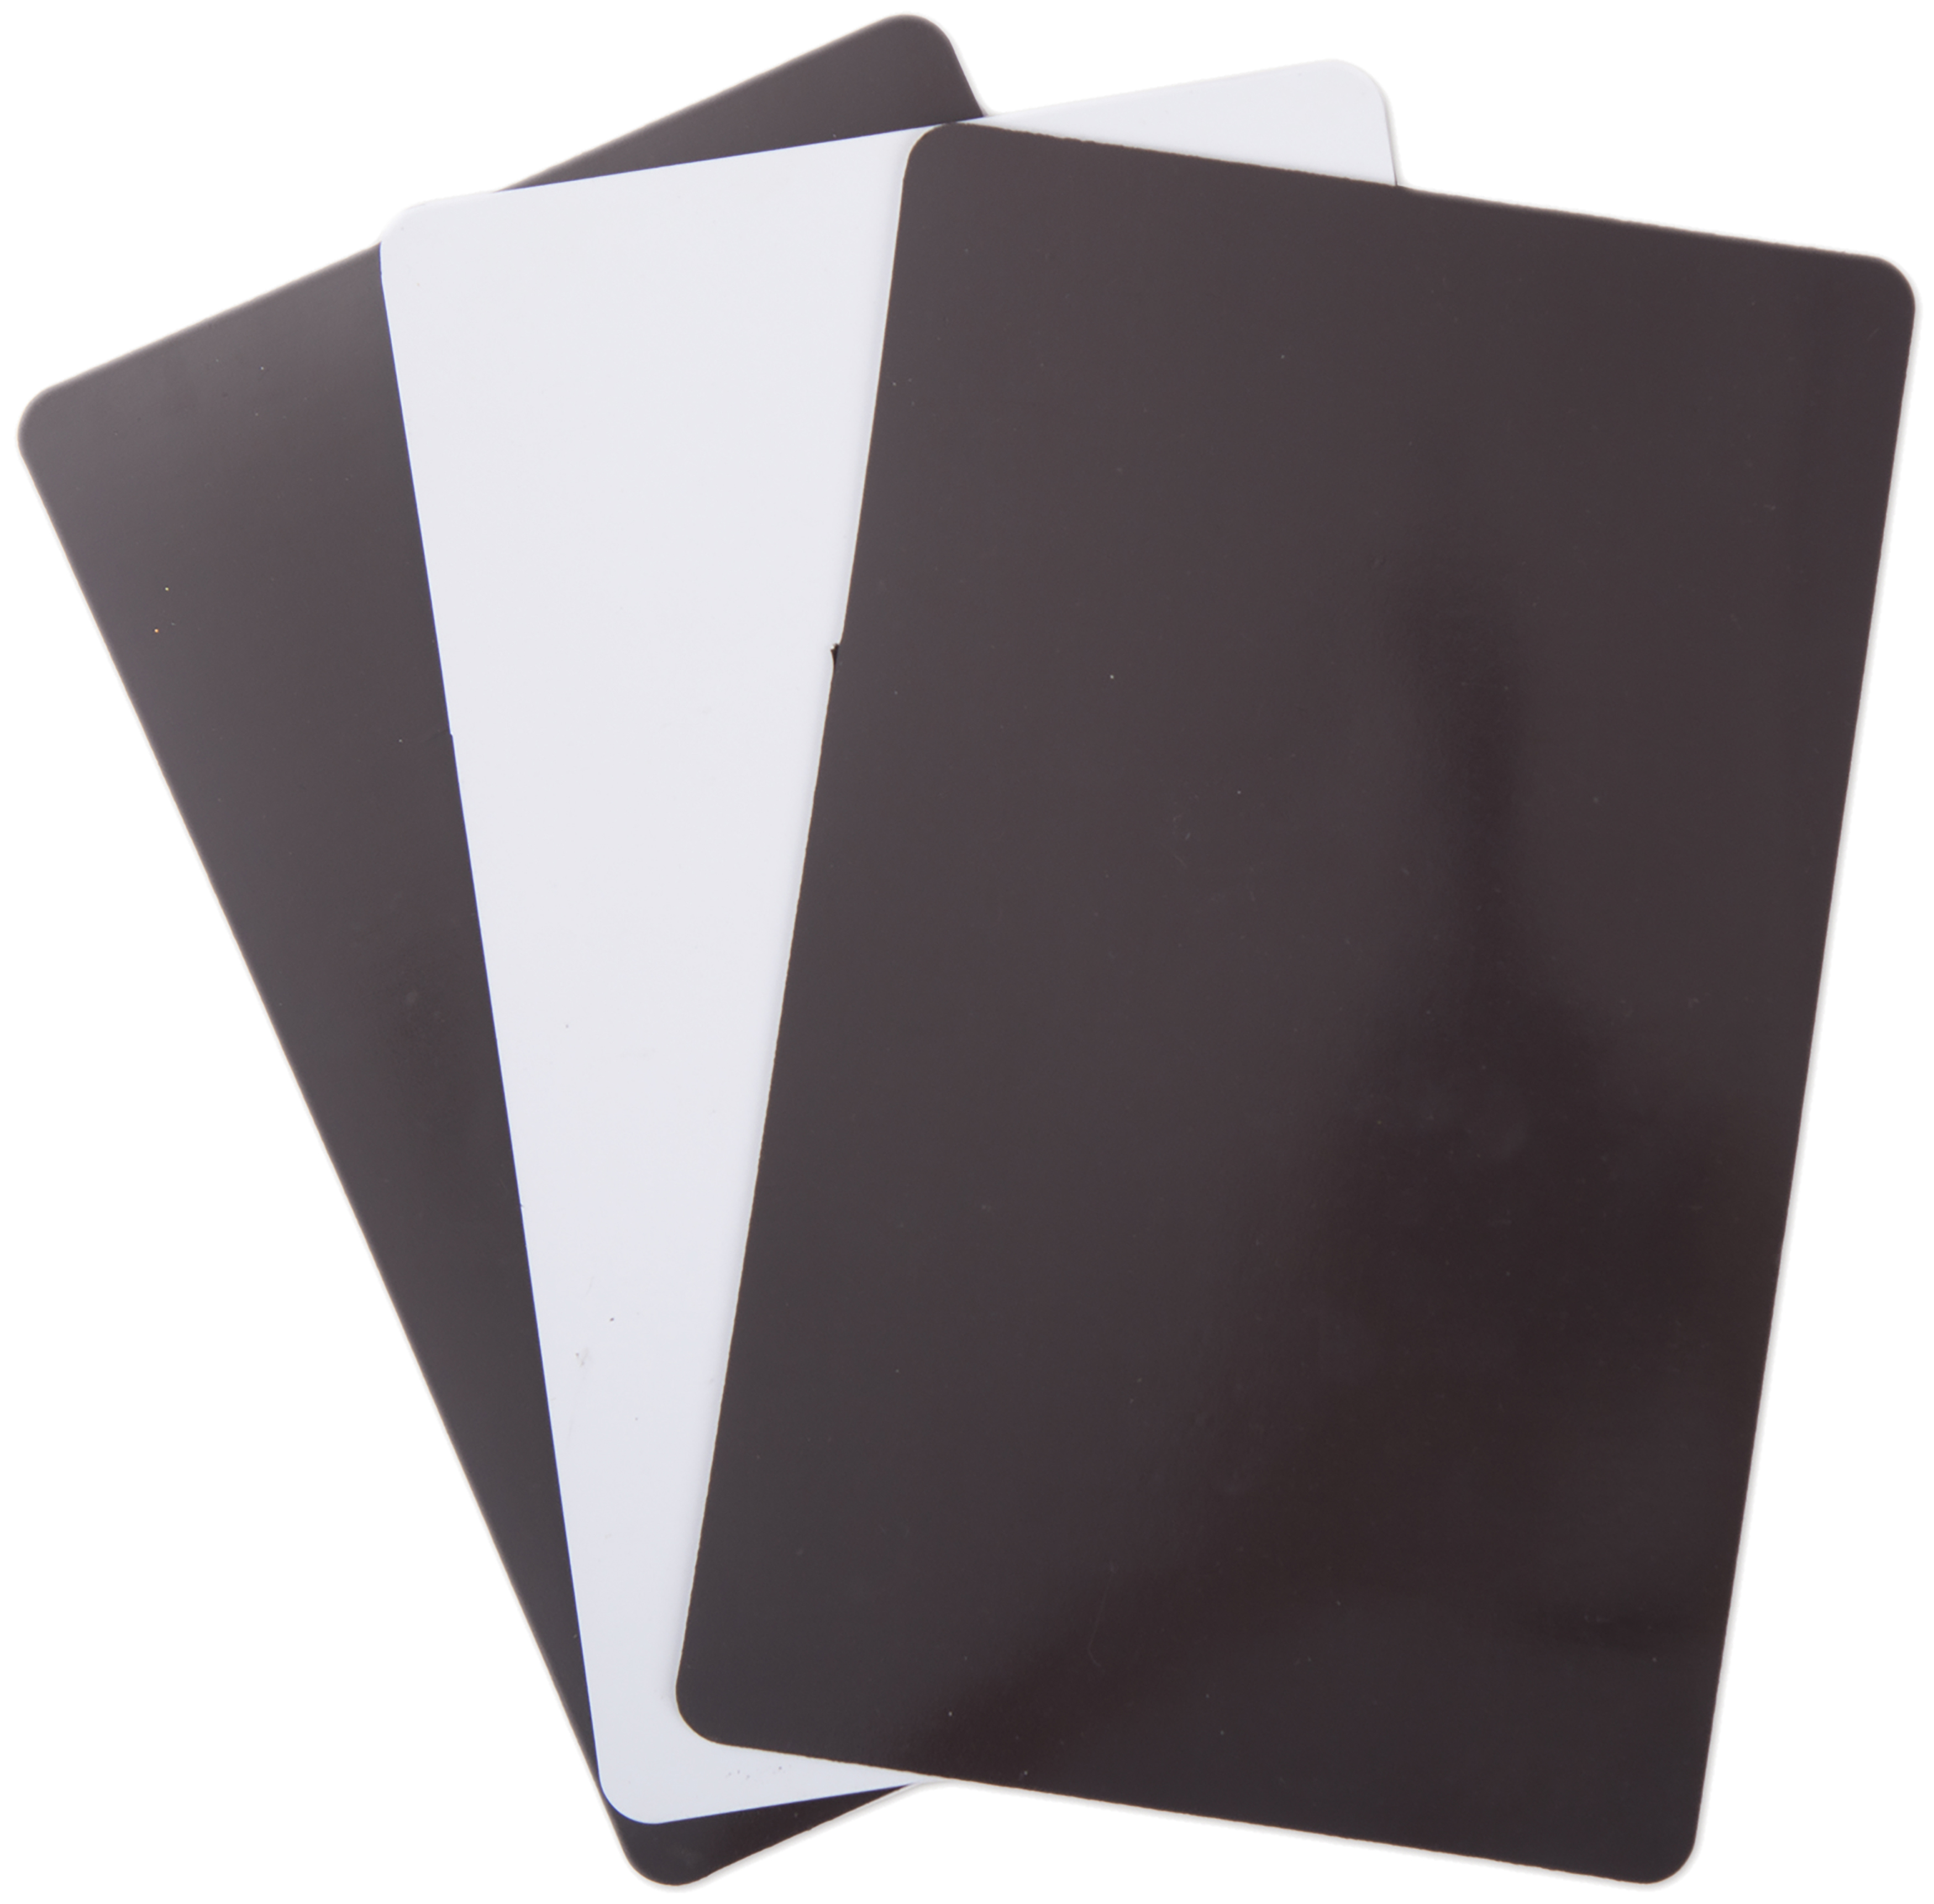 Sizzix - Magnetic Sheets 6X8 (3/pkg)